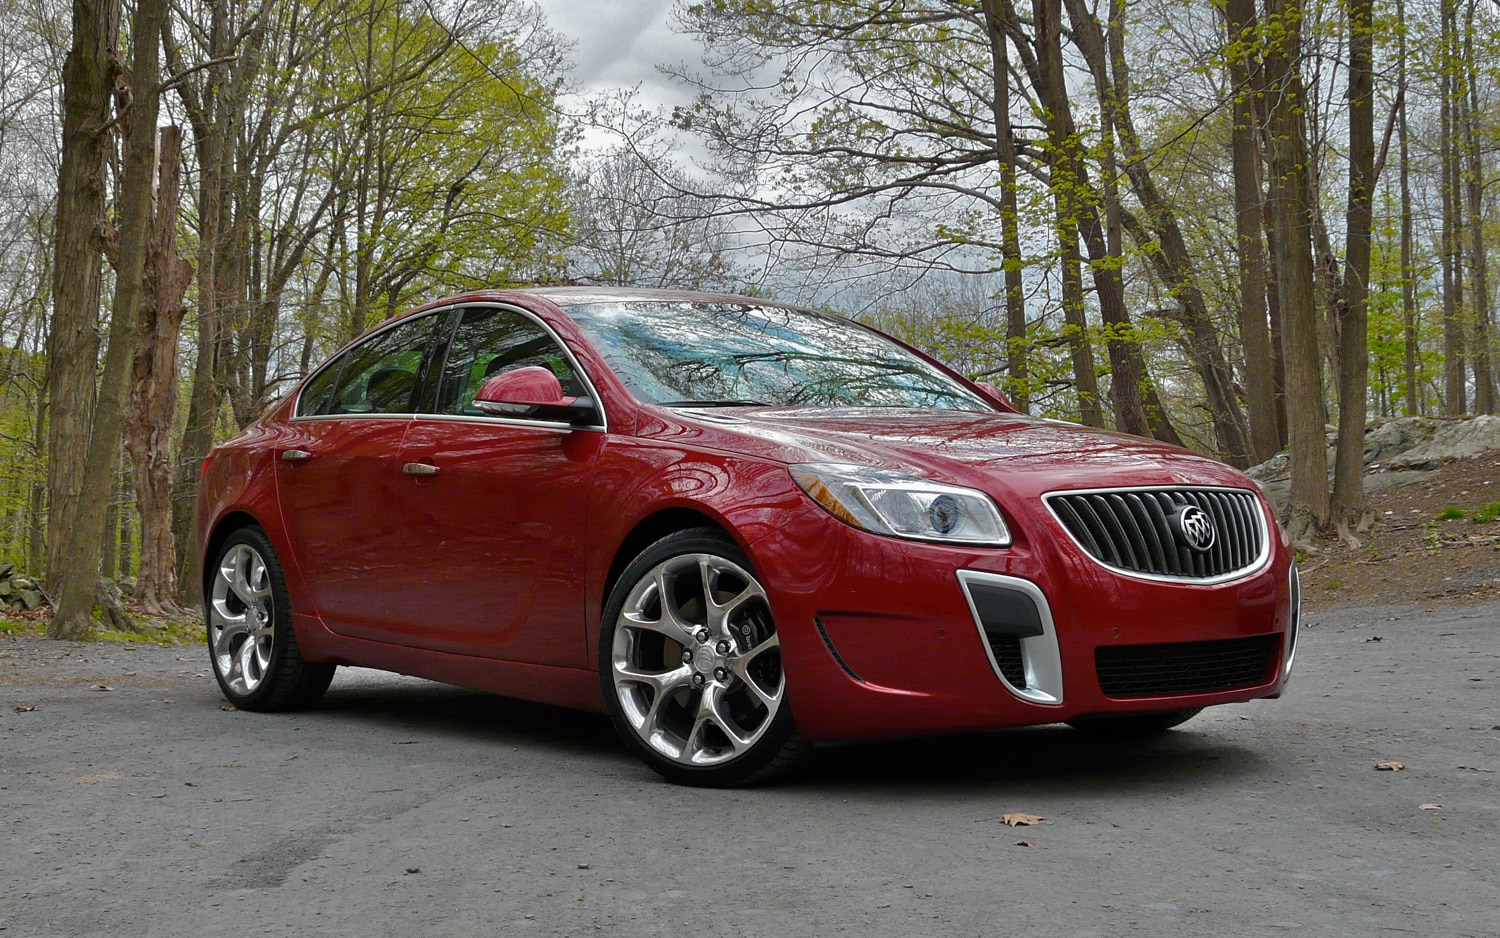 hight resolution of driven 2012 buick regal gs automatic automobile magazinerhautomobilemag 92 buick regal gs at tvtuner